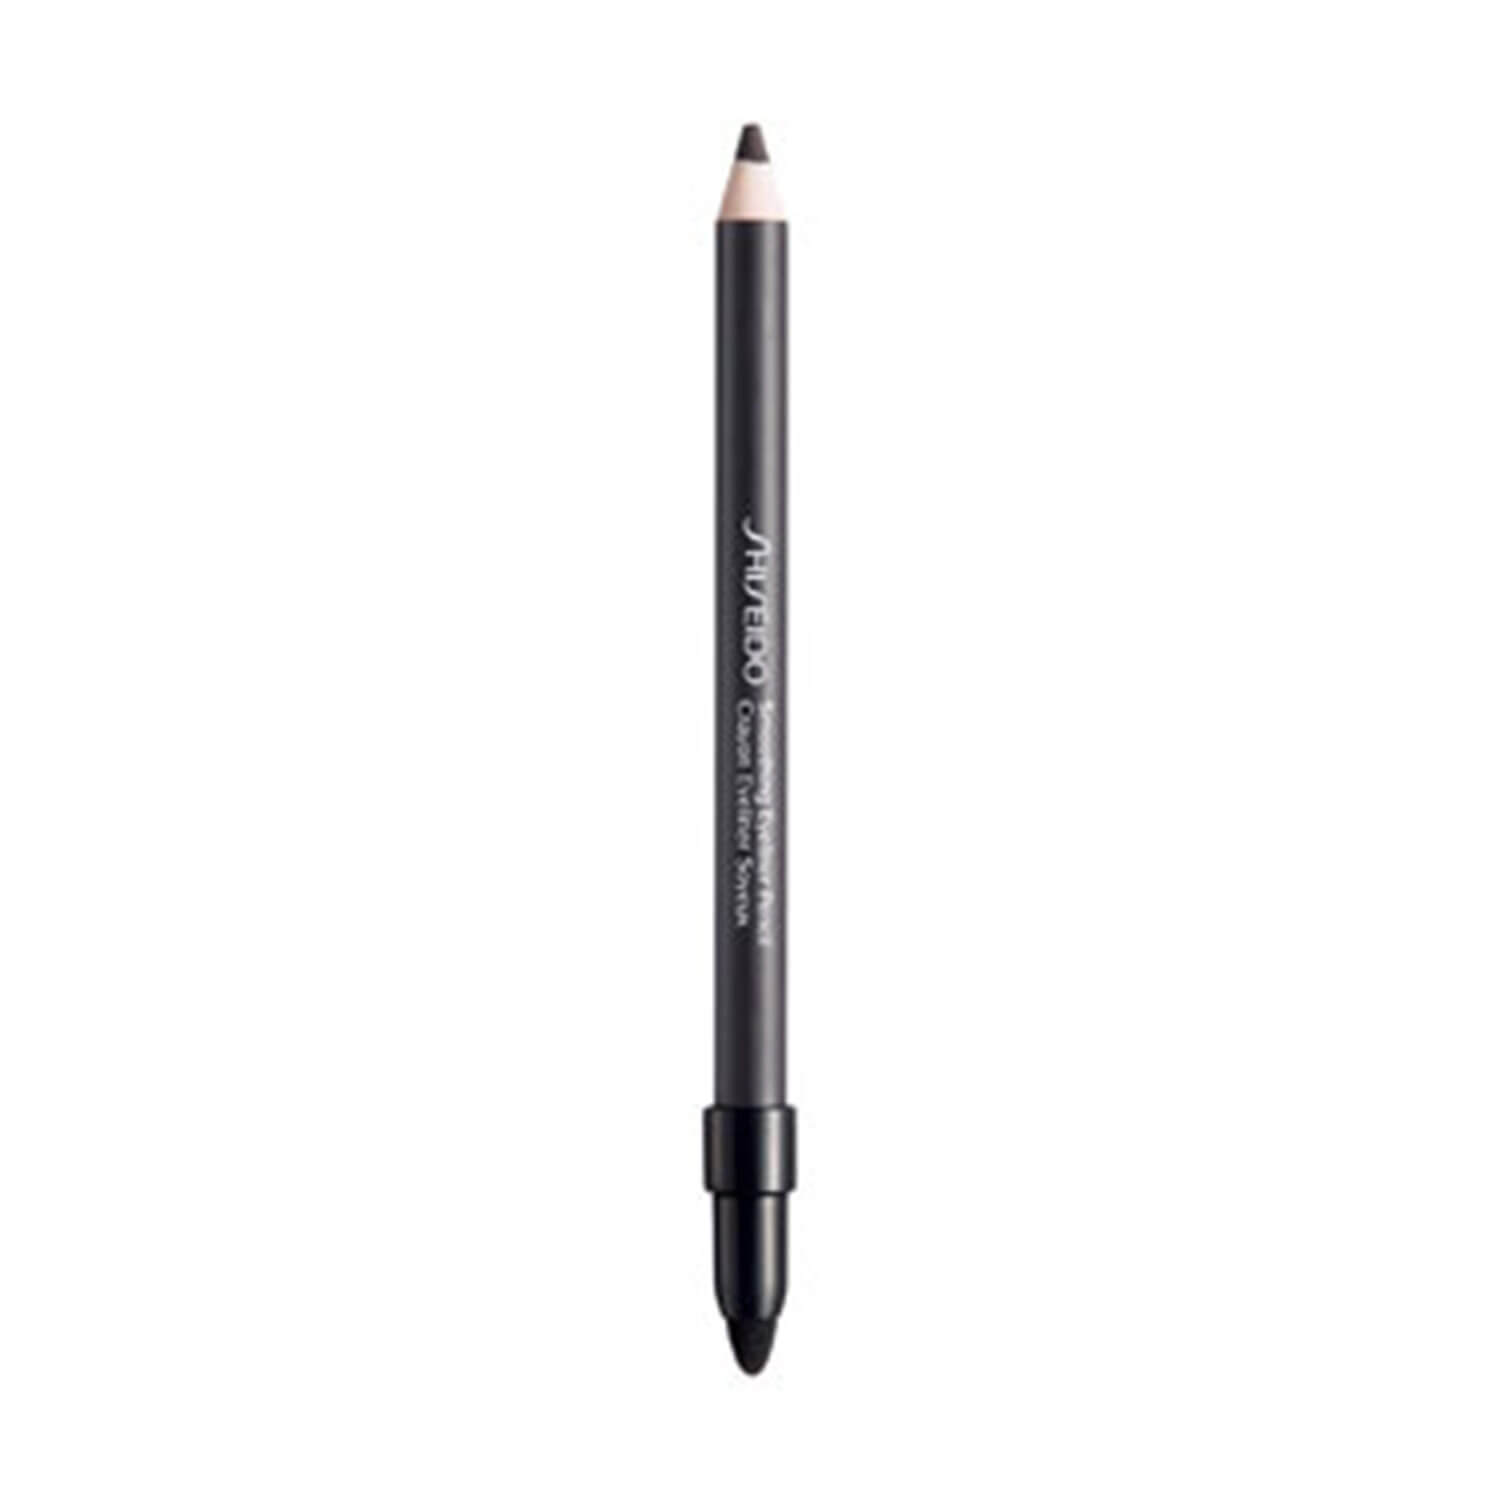 Smoothing Eyeliner Pencil - BR602